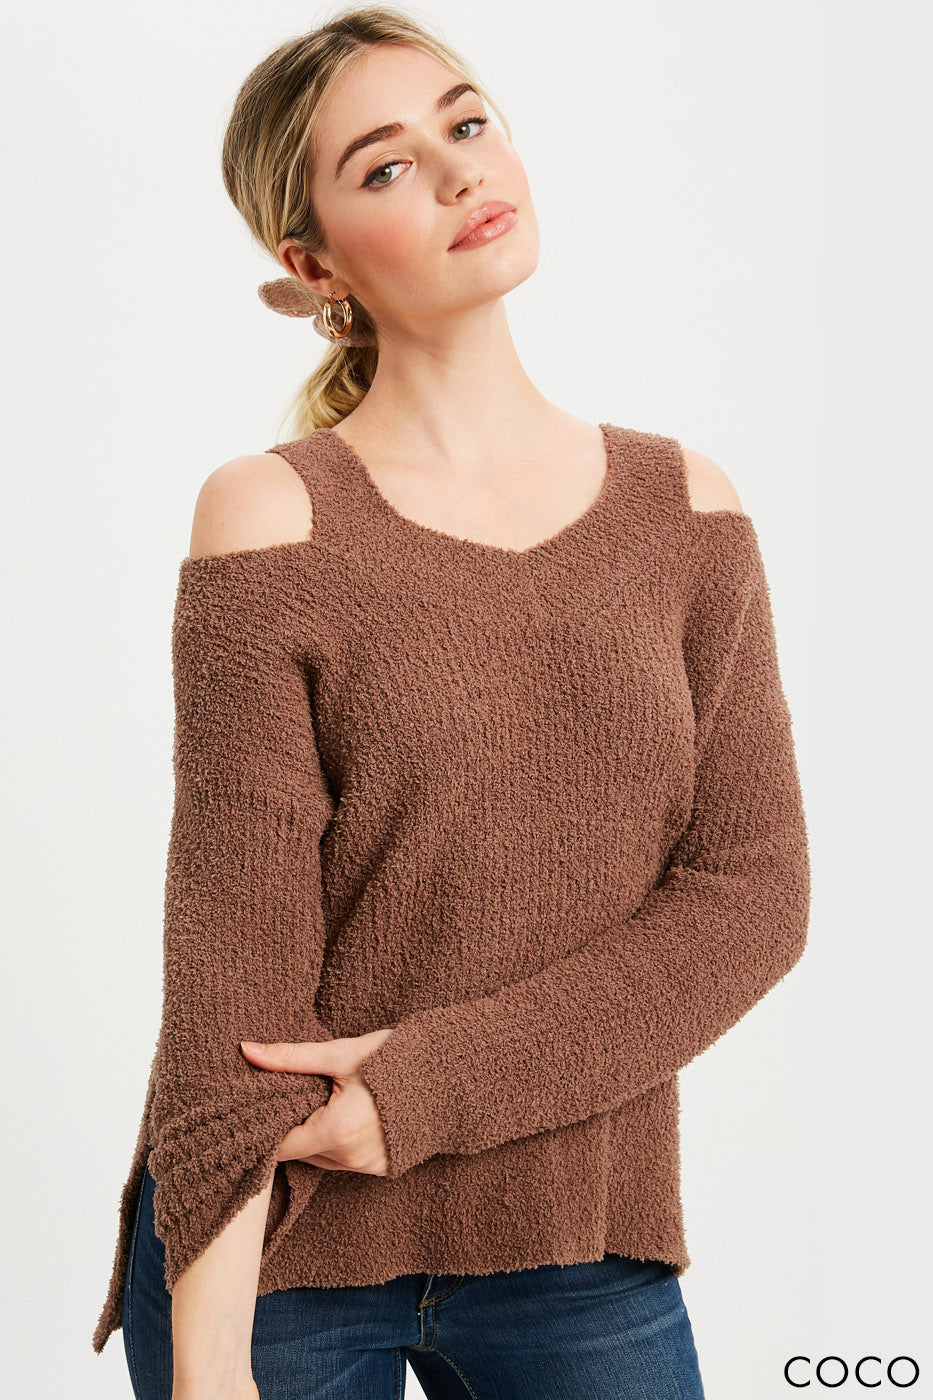 Soft Feel V-Neck Cutout Pullover - Coco